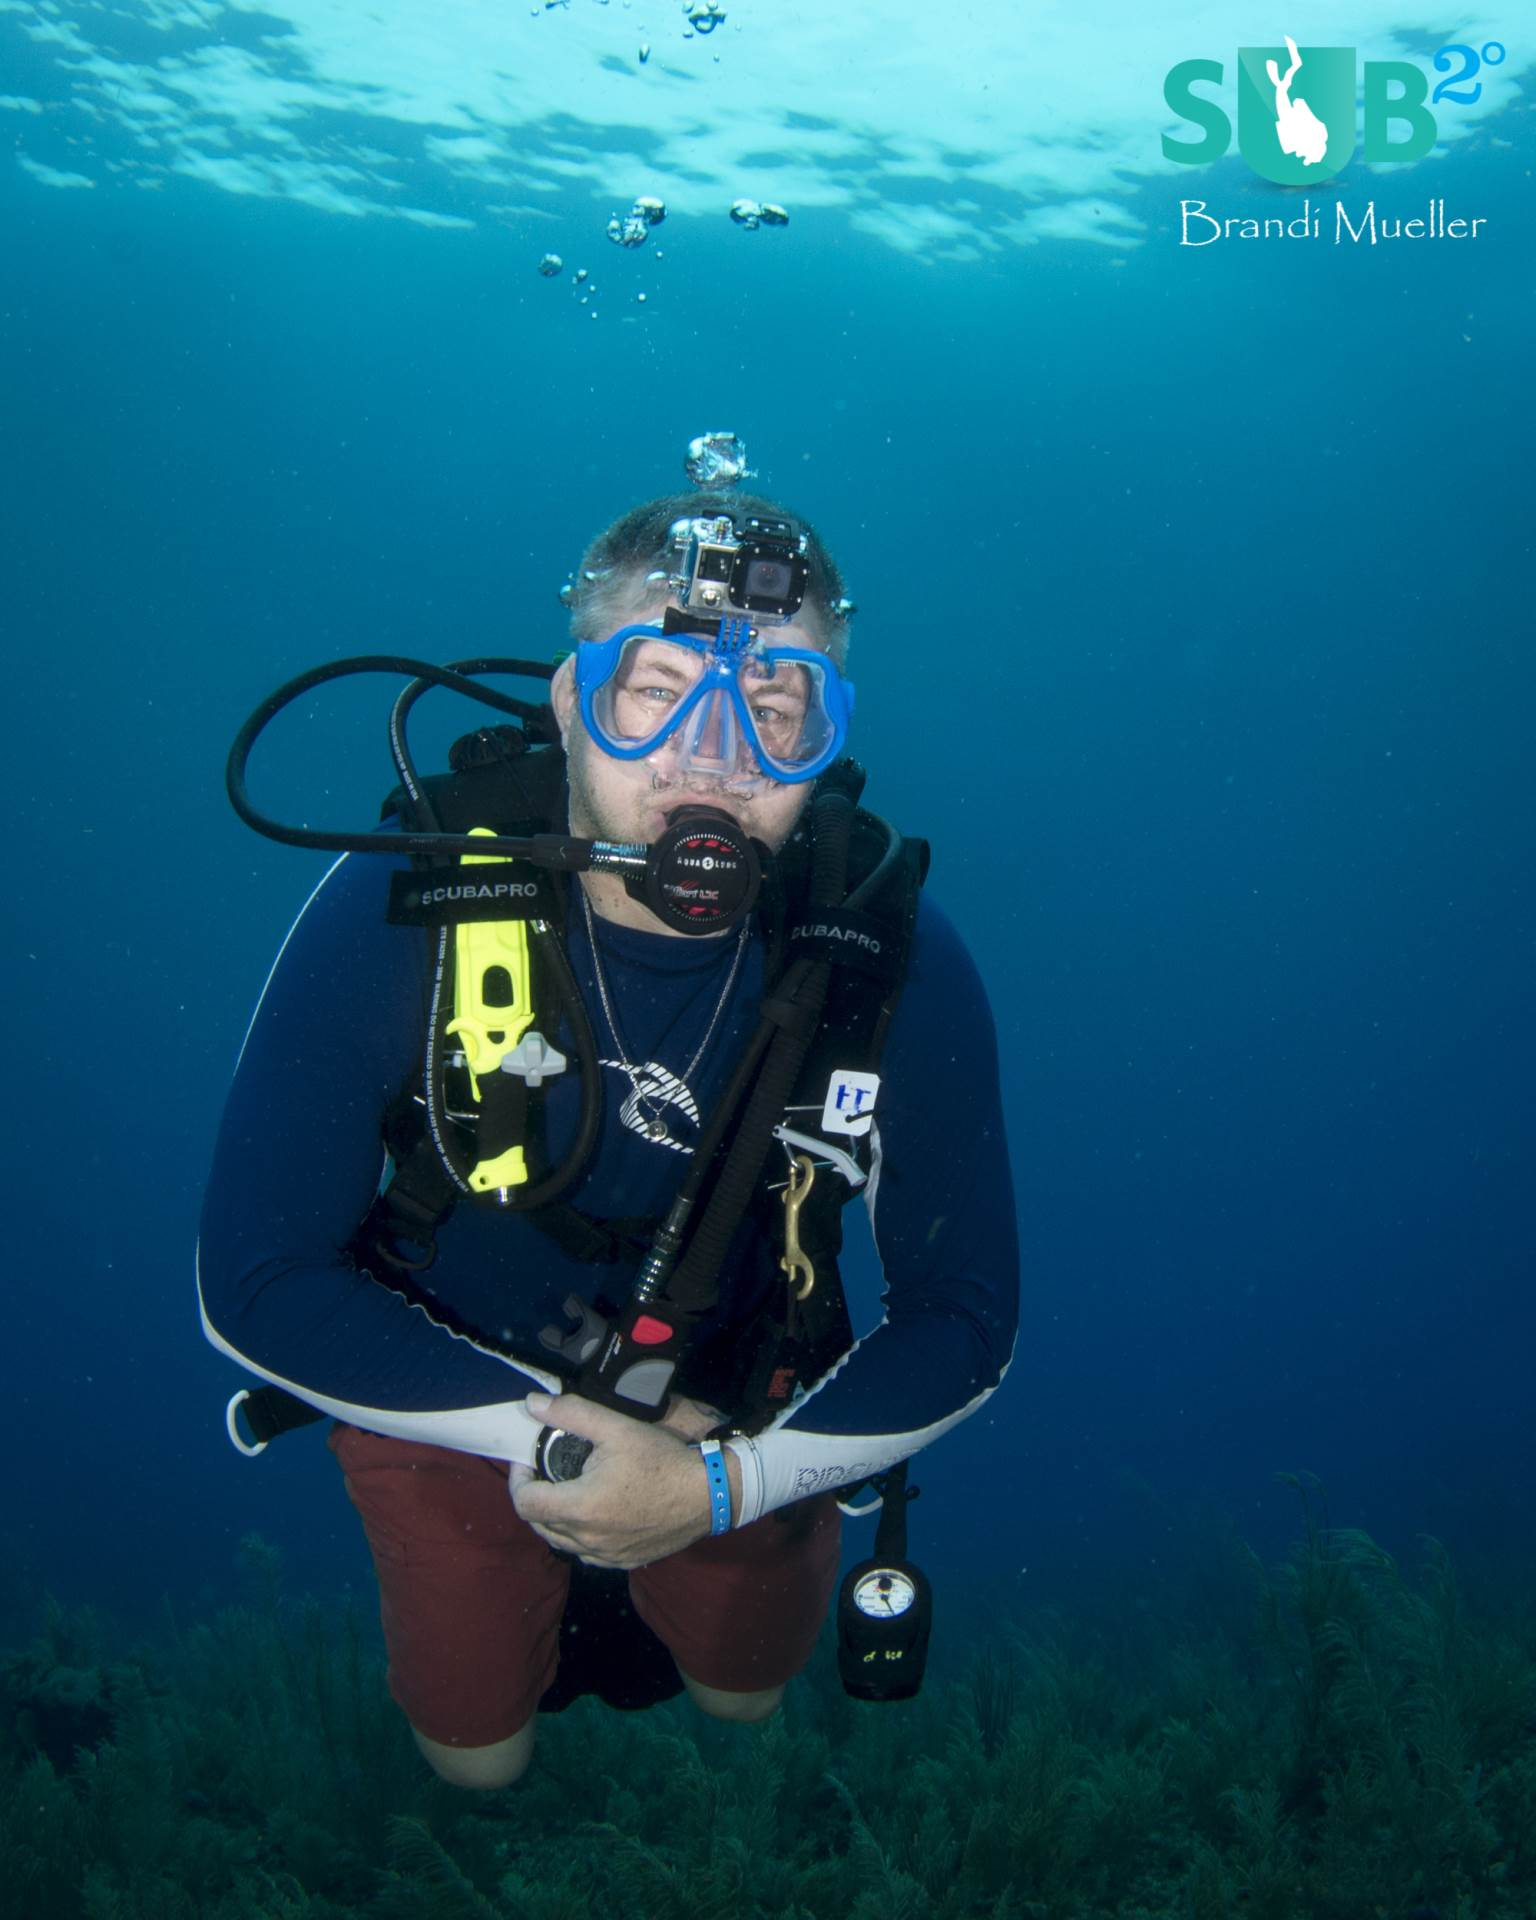 My dive buddy Mike with the Sandmarc Aqua Mask.